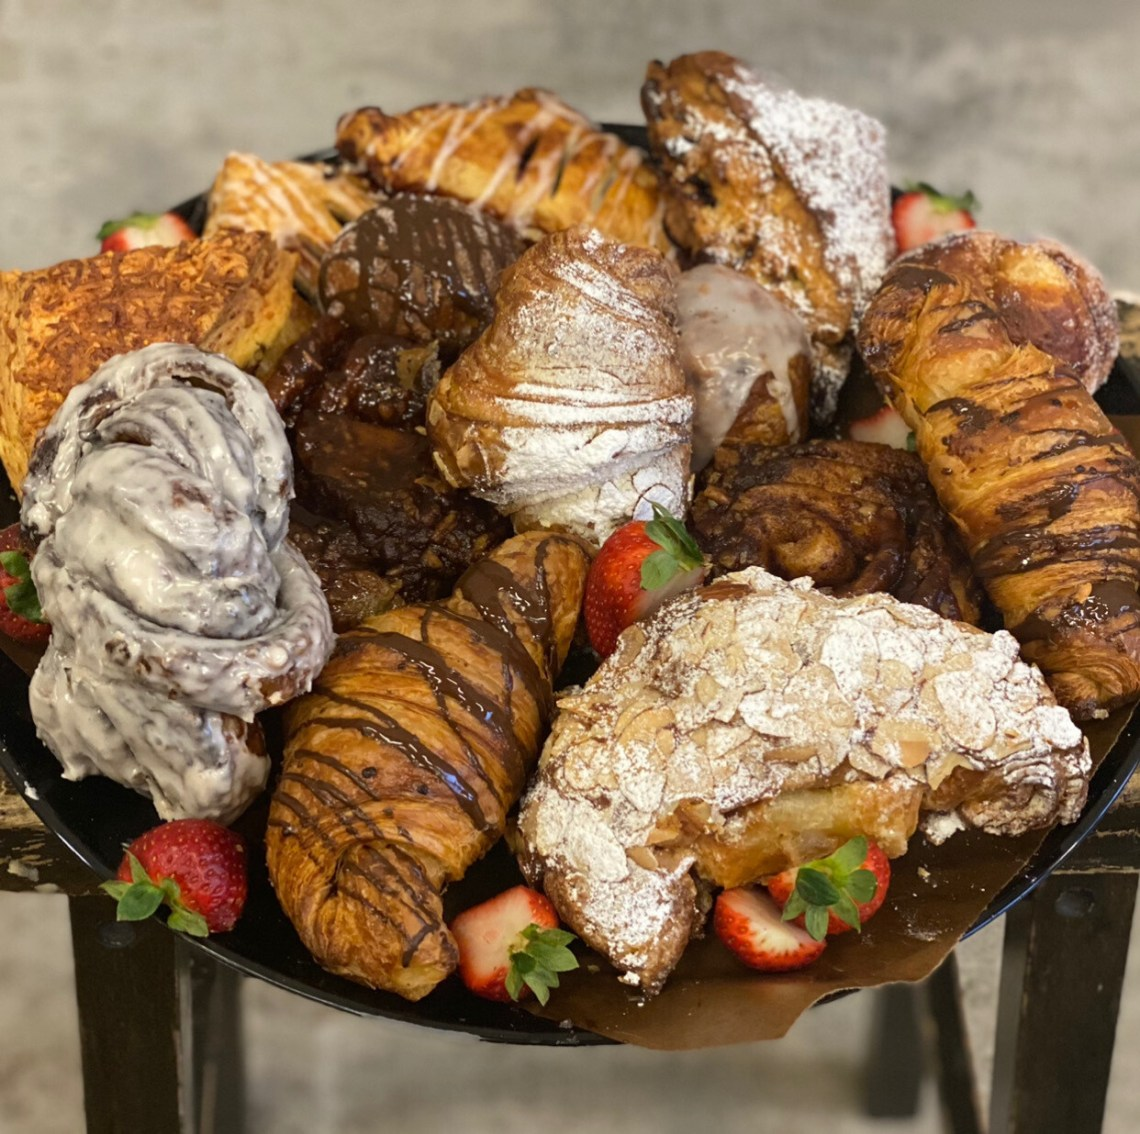 Large Pastry Platter